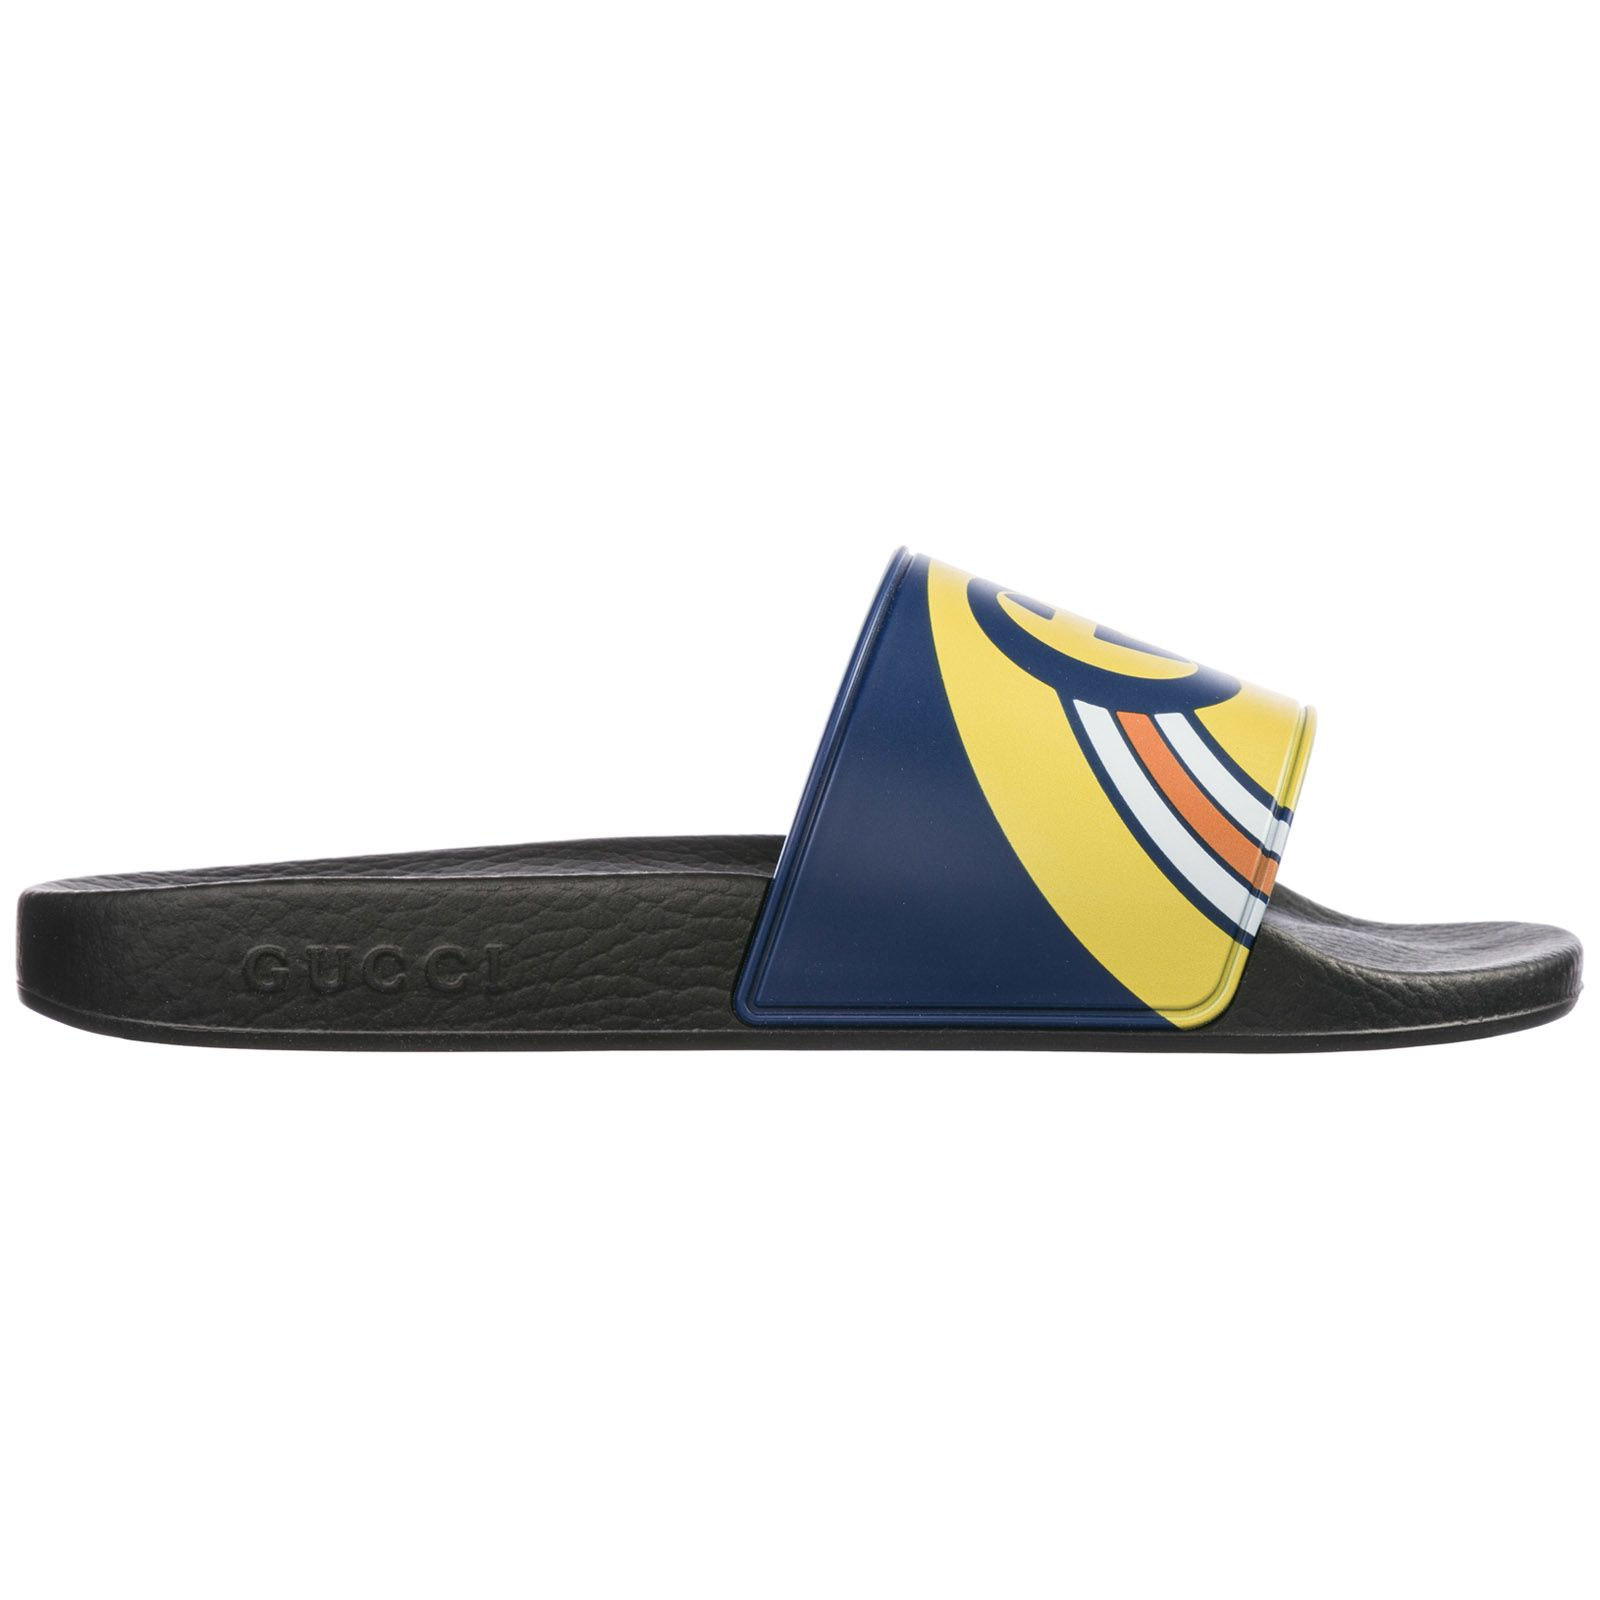 67a624790308 Gucci Gucci Slippers Sandals Rubber - Electric Blue - 10846866